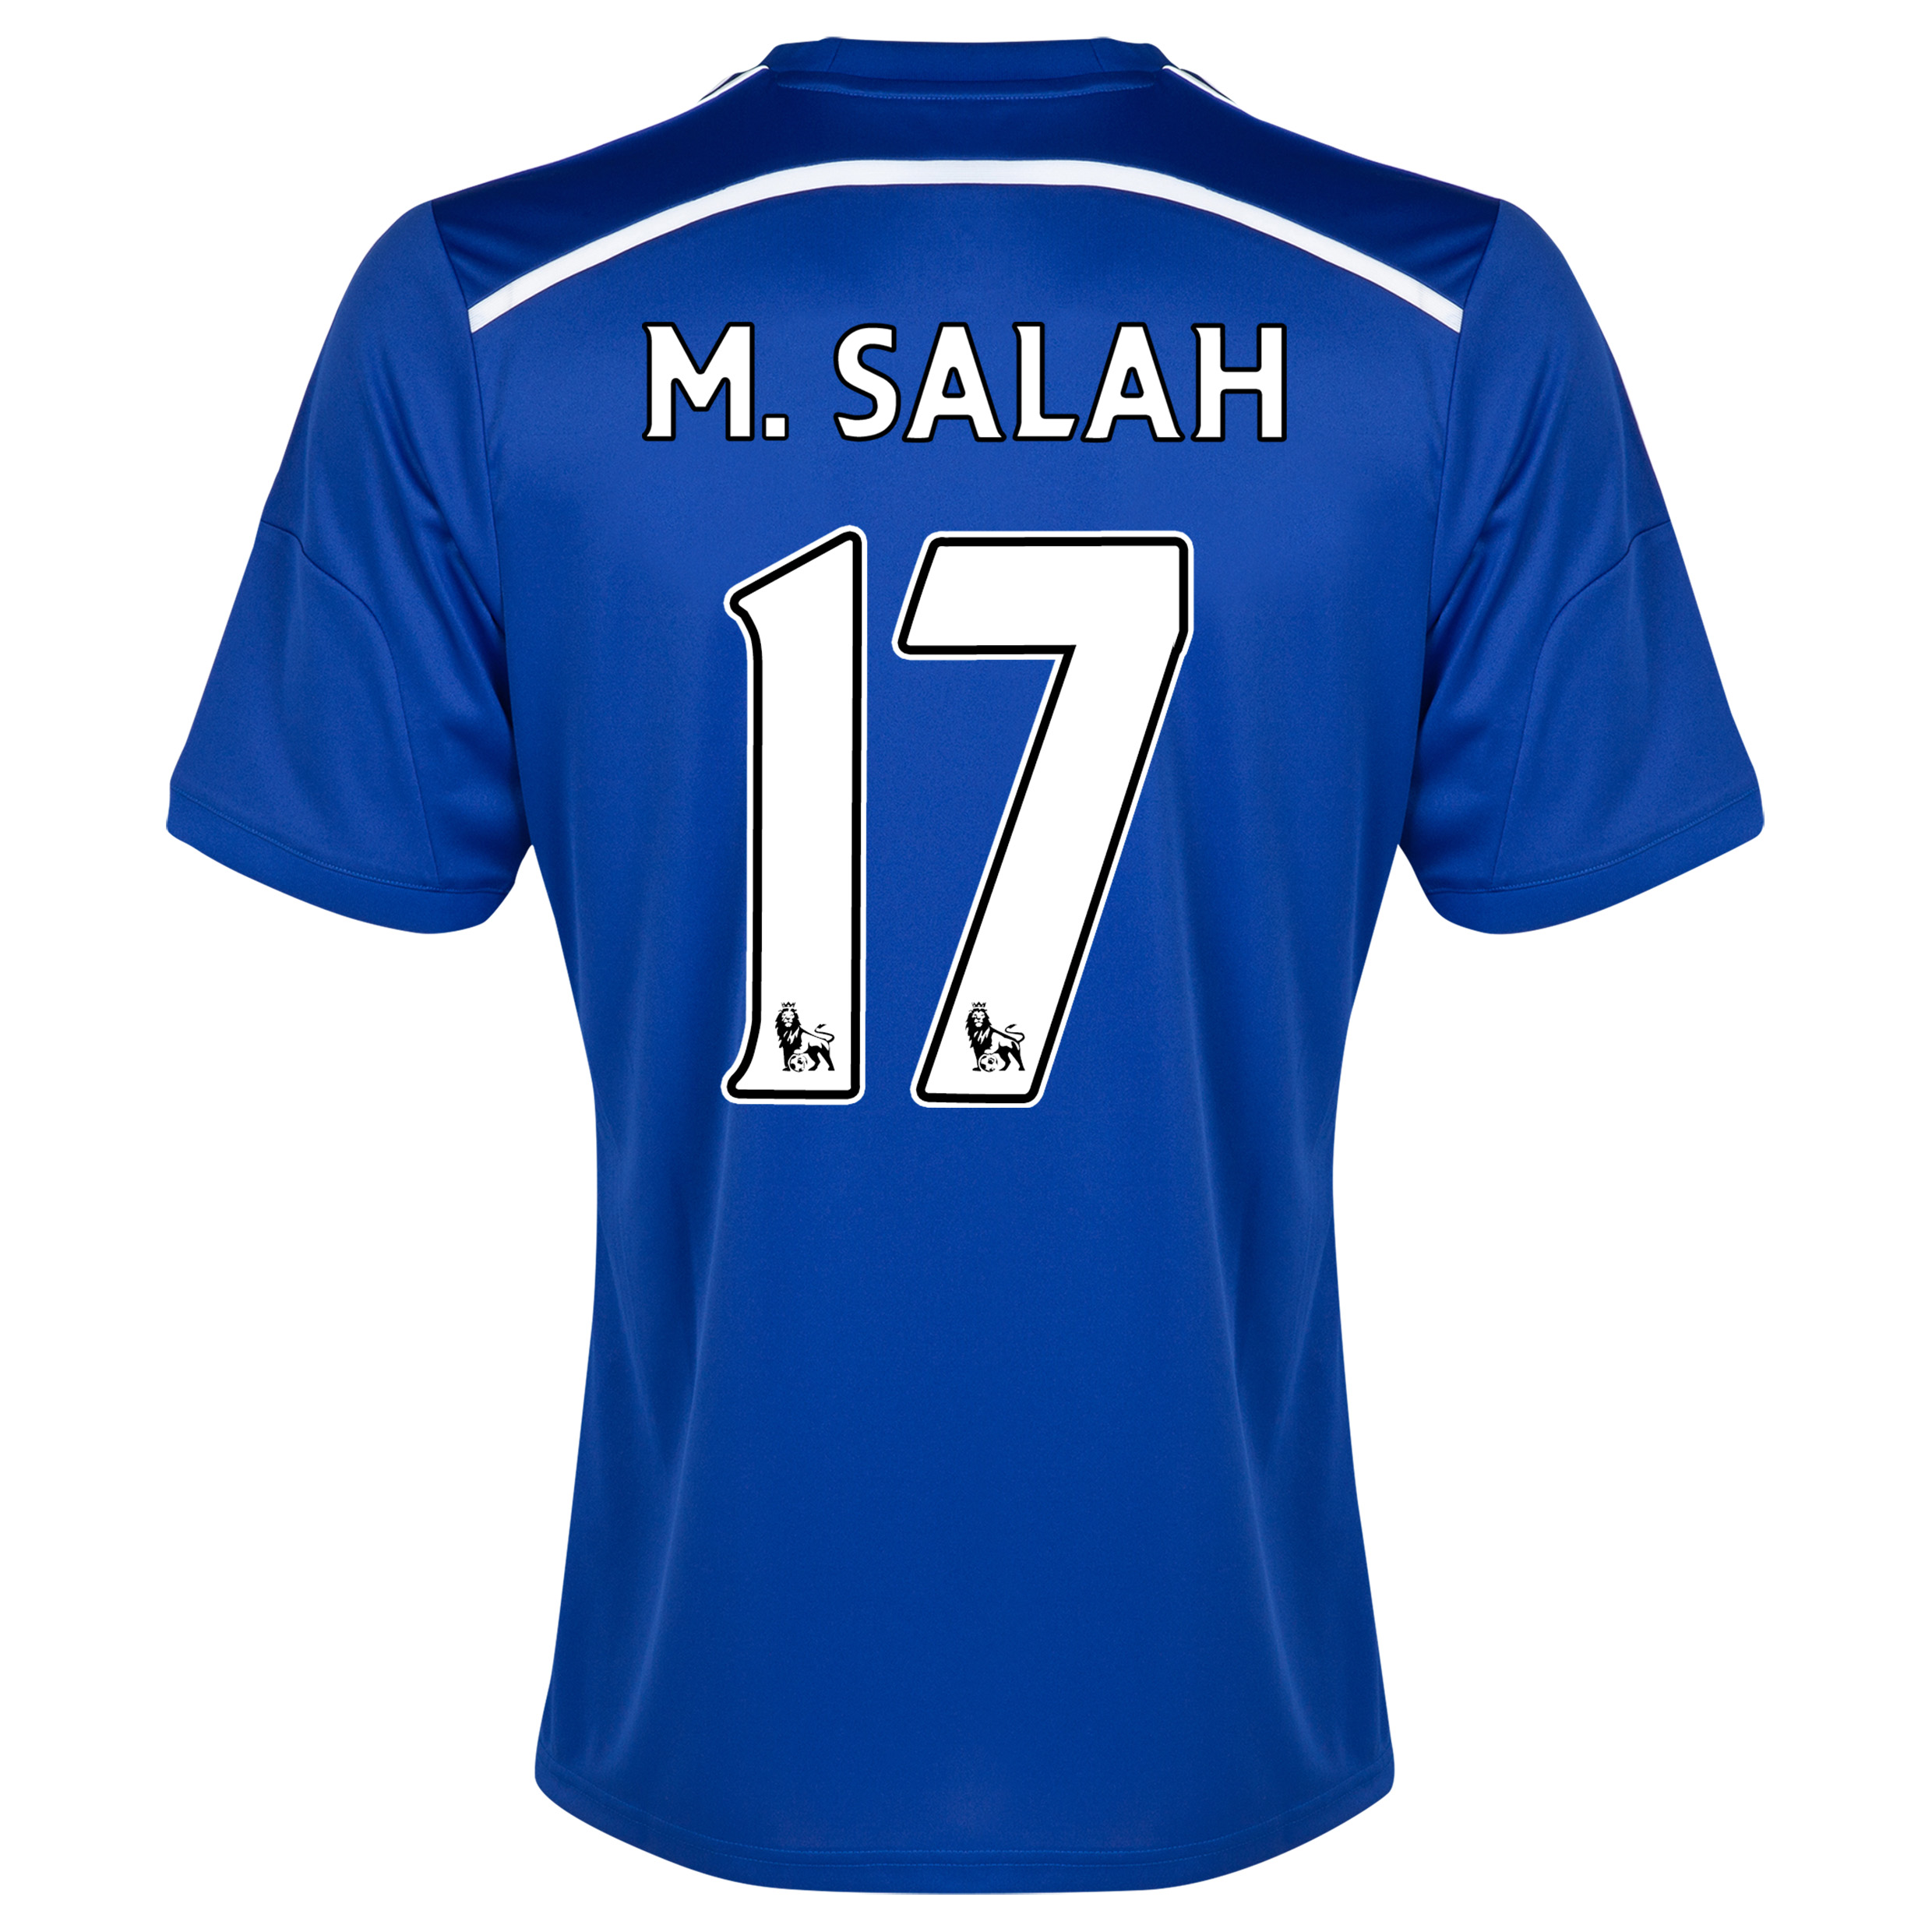 Chelsea Home Shirt 2014/15 - Outsize Blue with M. Salah 17 printing